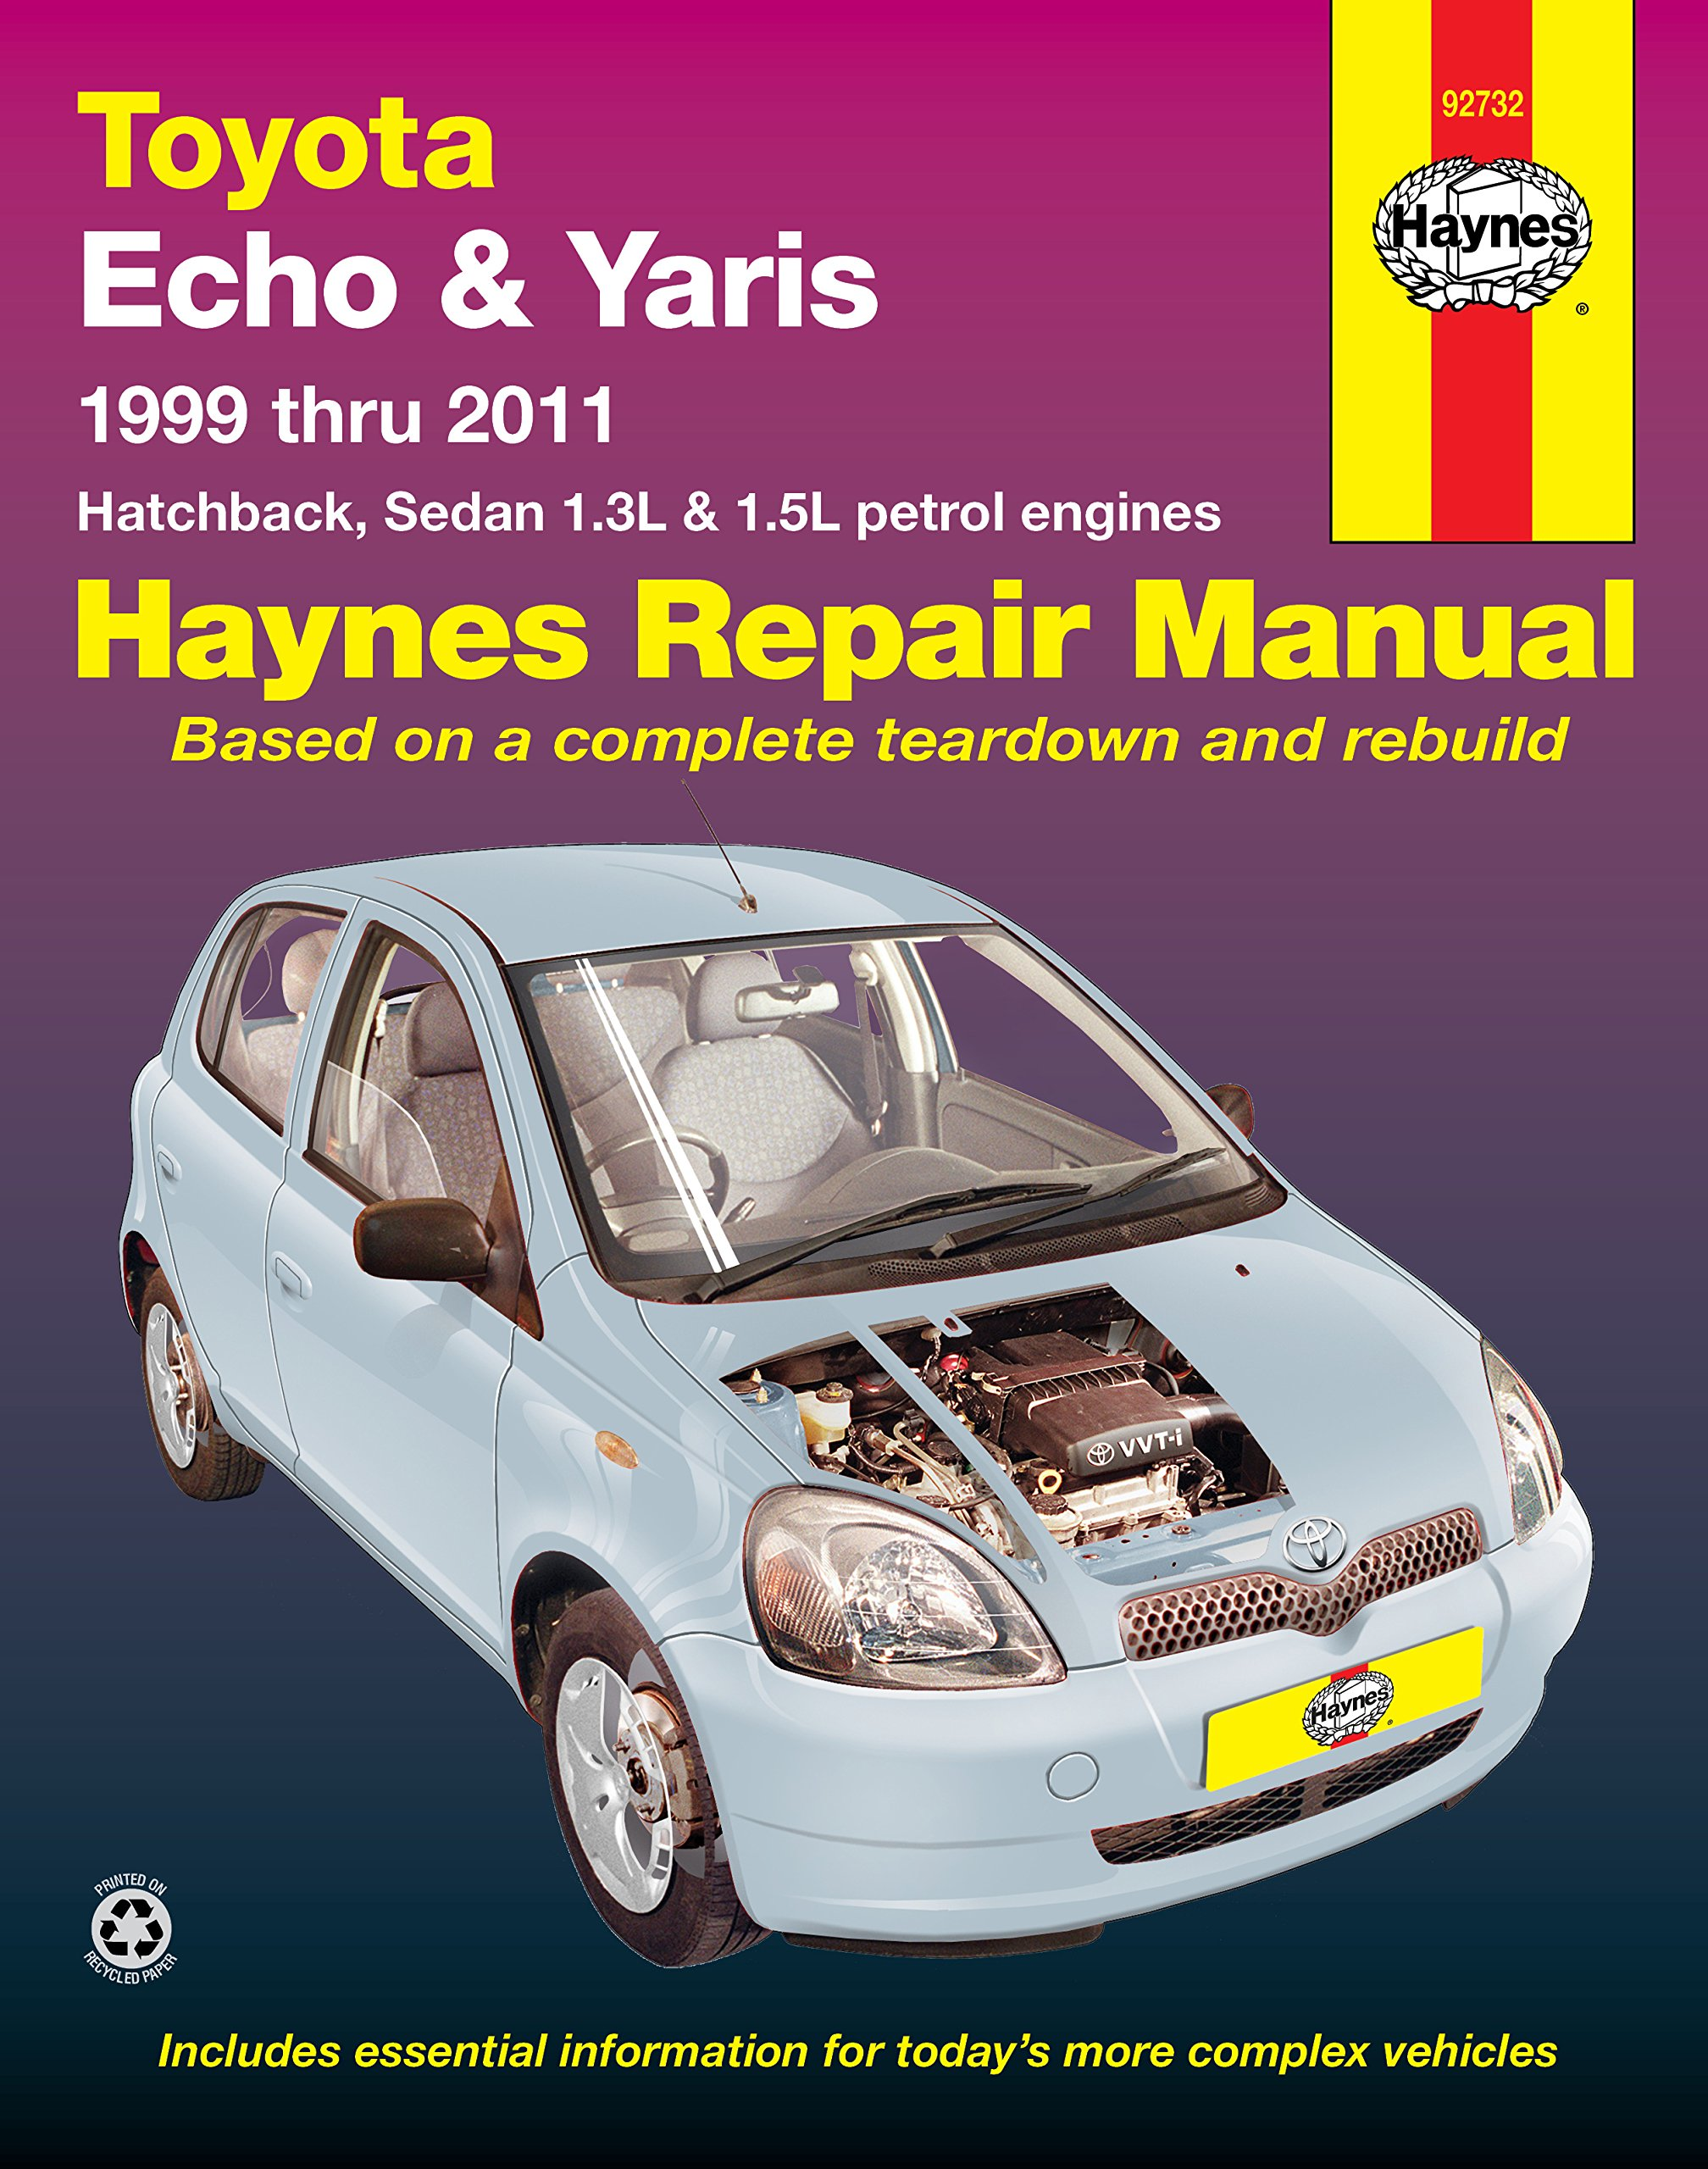 Toyota Echo/Yaris Automotive Repair Manual: 1999-2011: Haynes Publishing:  9781620921364: Textbooks: Amazon Canada